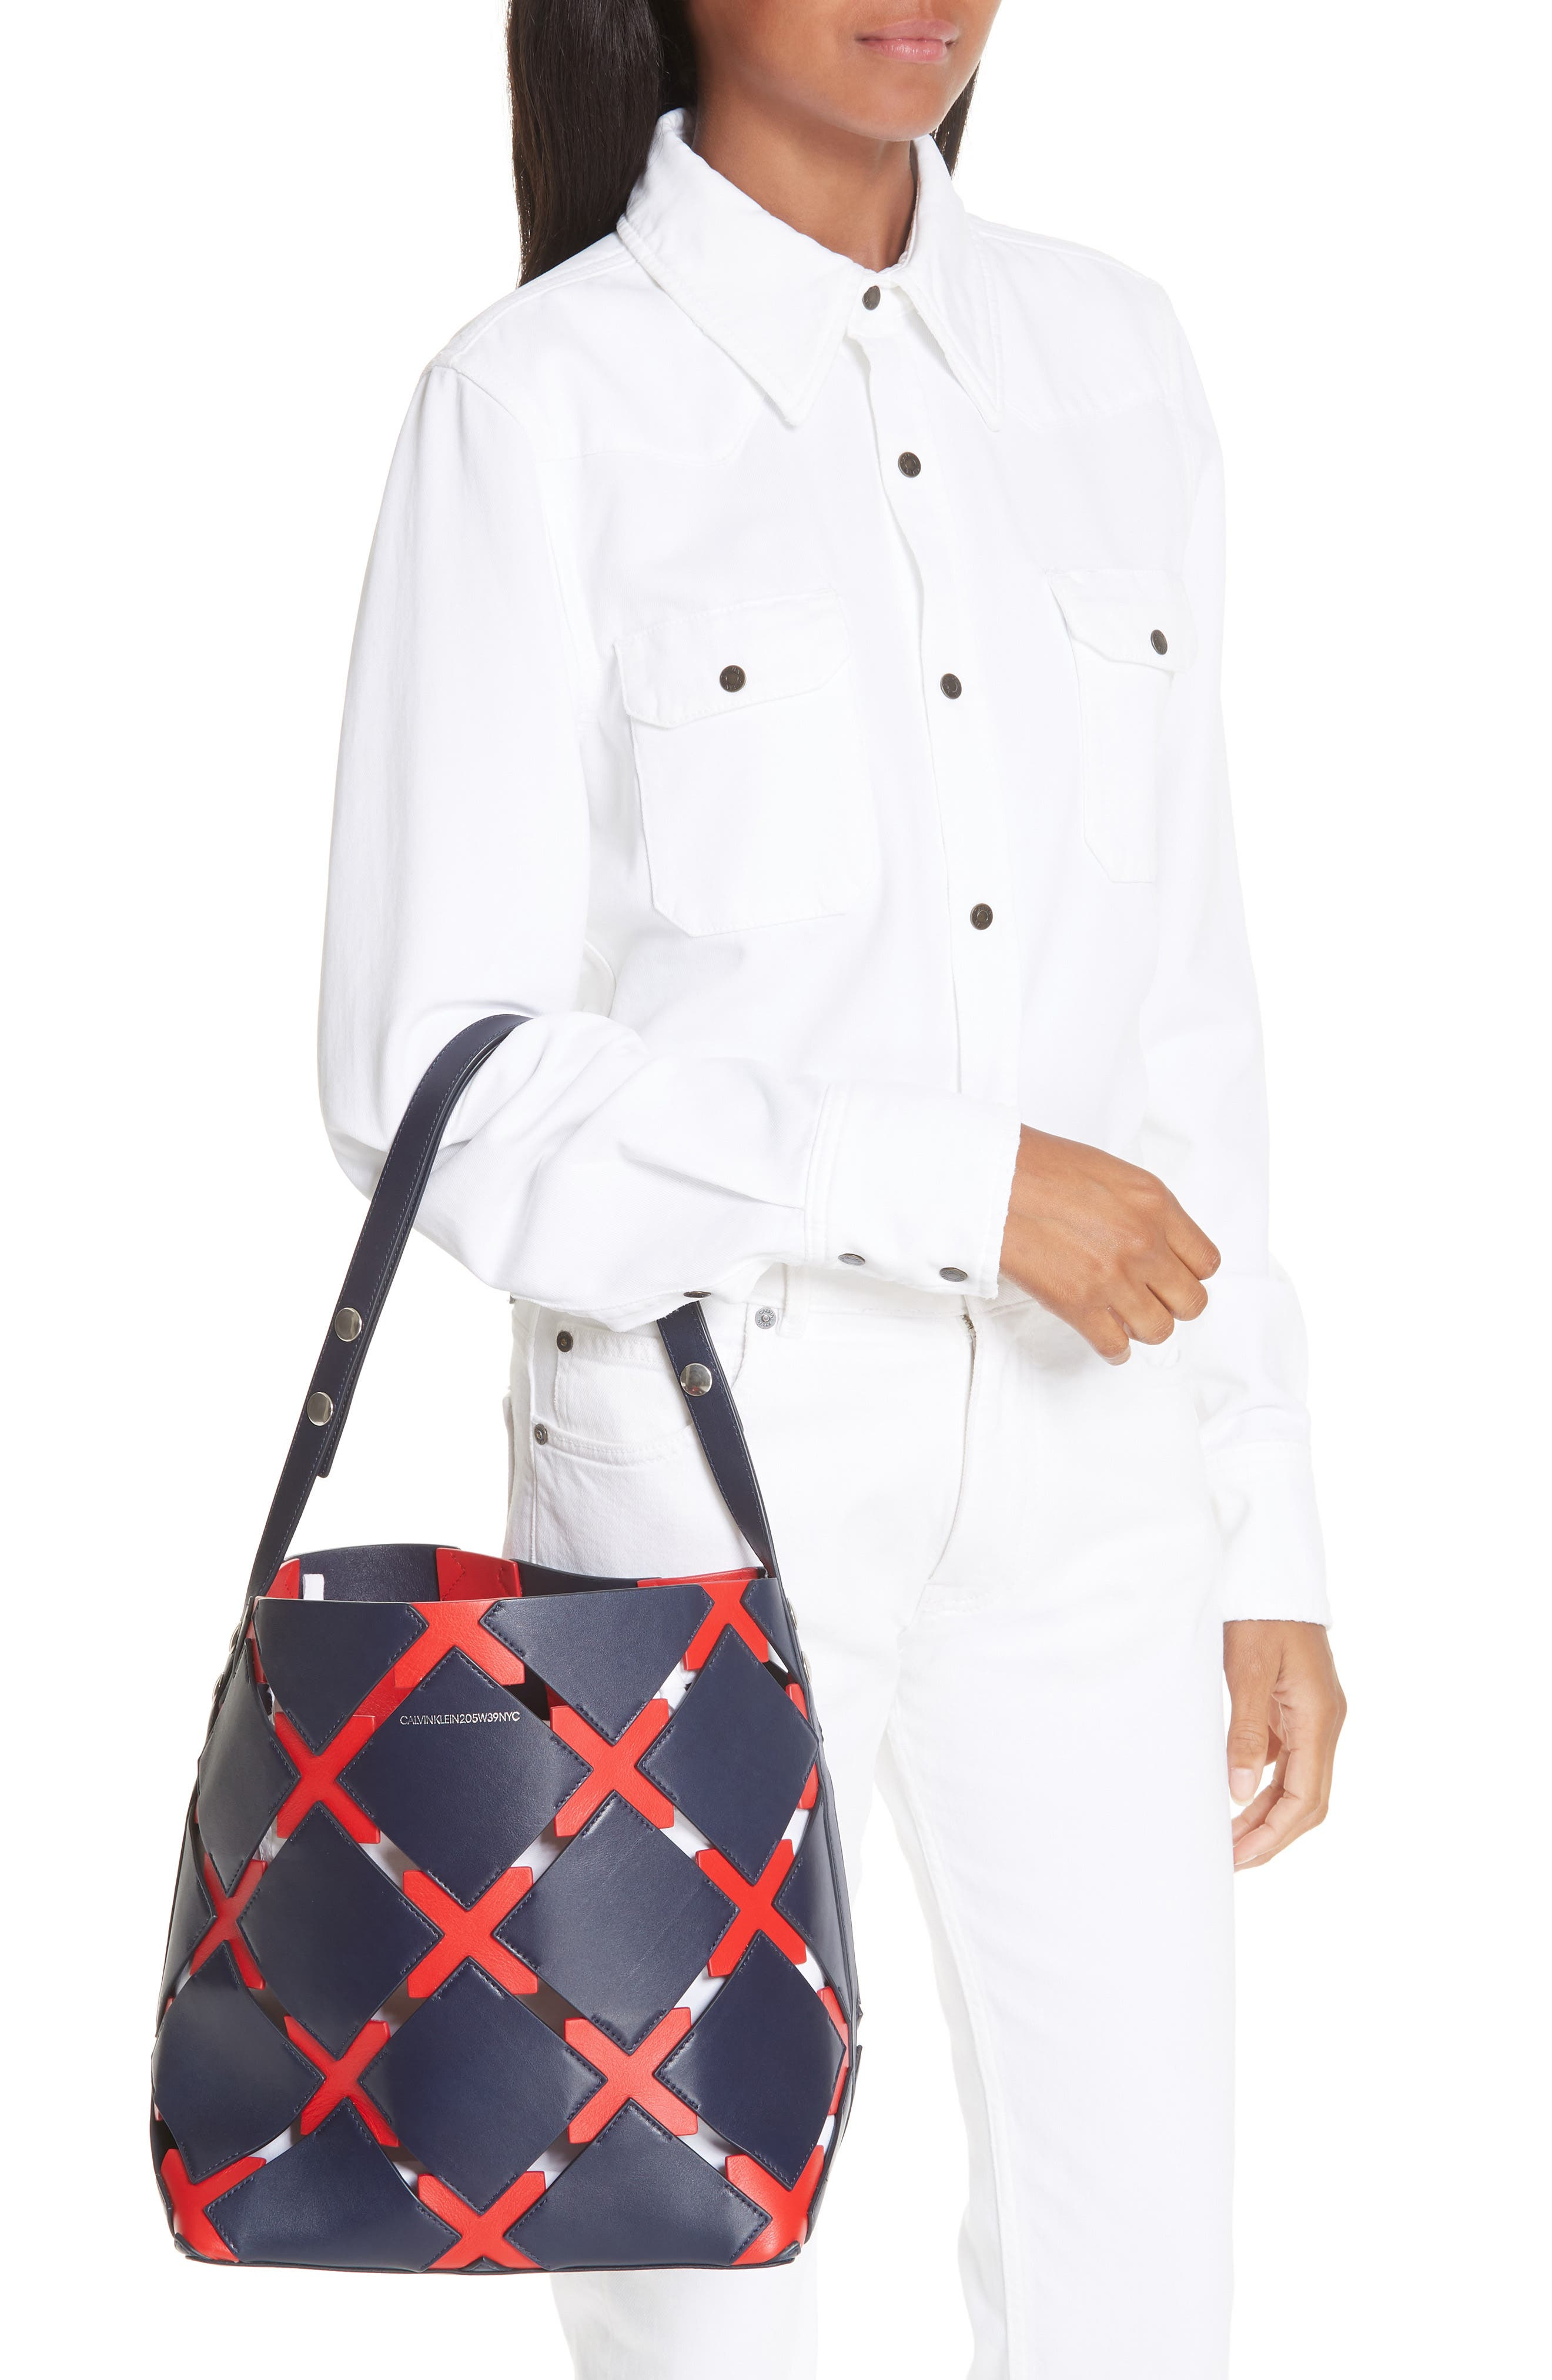 CALVIN KLEIN 205W39NYC, Patchwork Quilt Leather Bucket Bag, Alternate thumbnail 2, color, 424